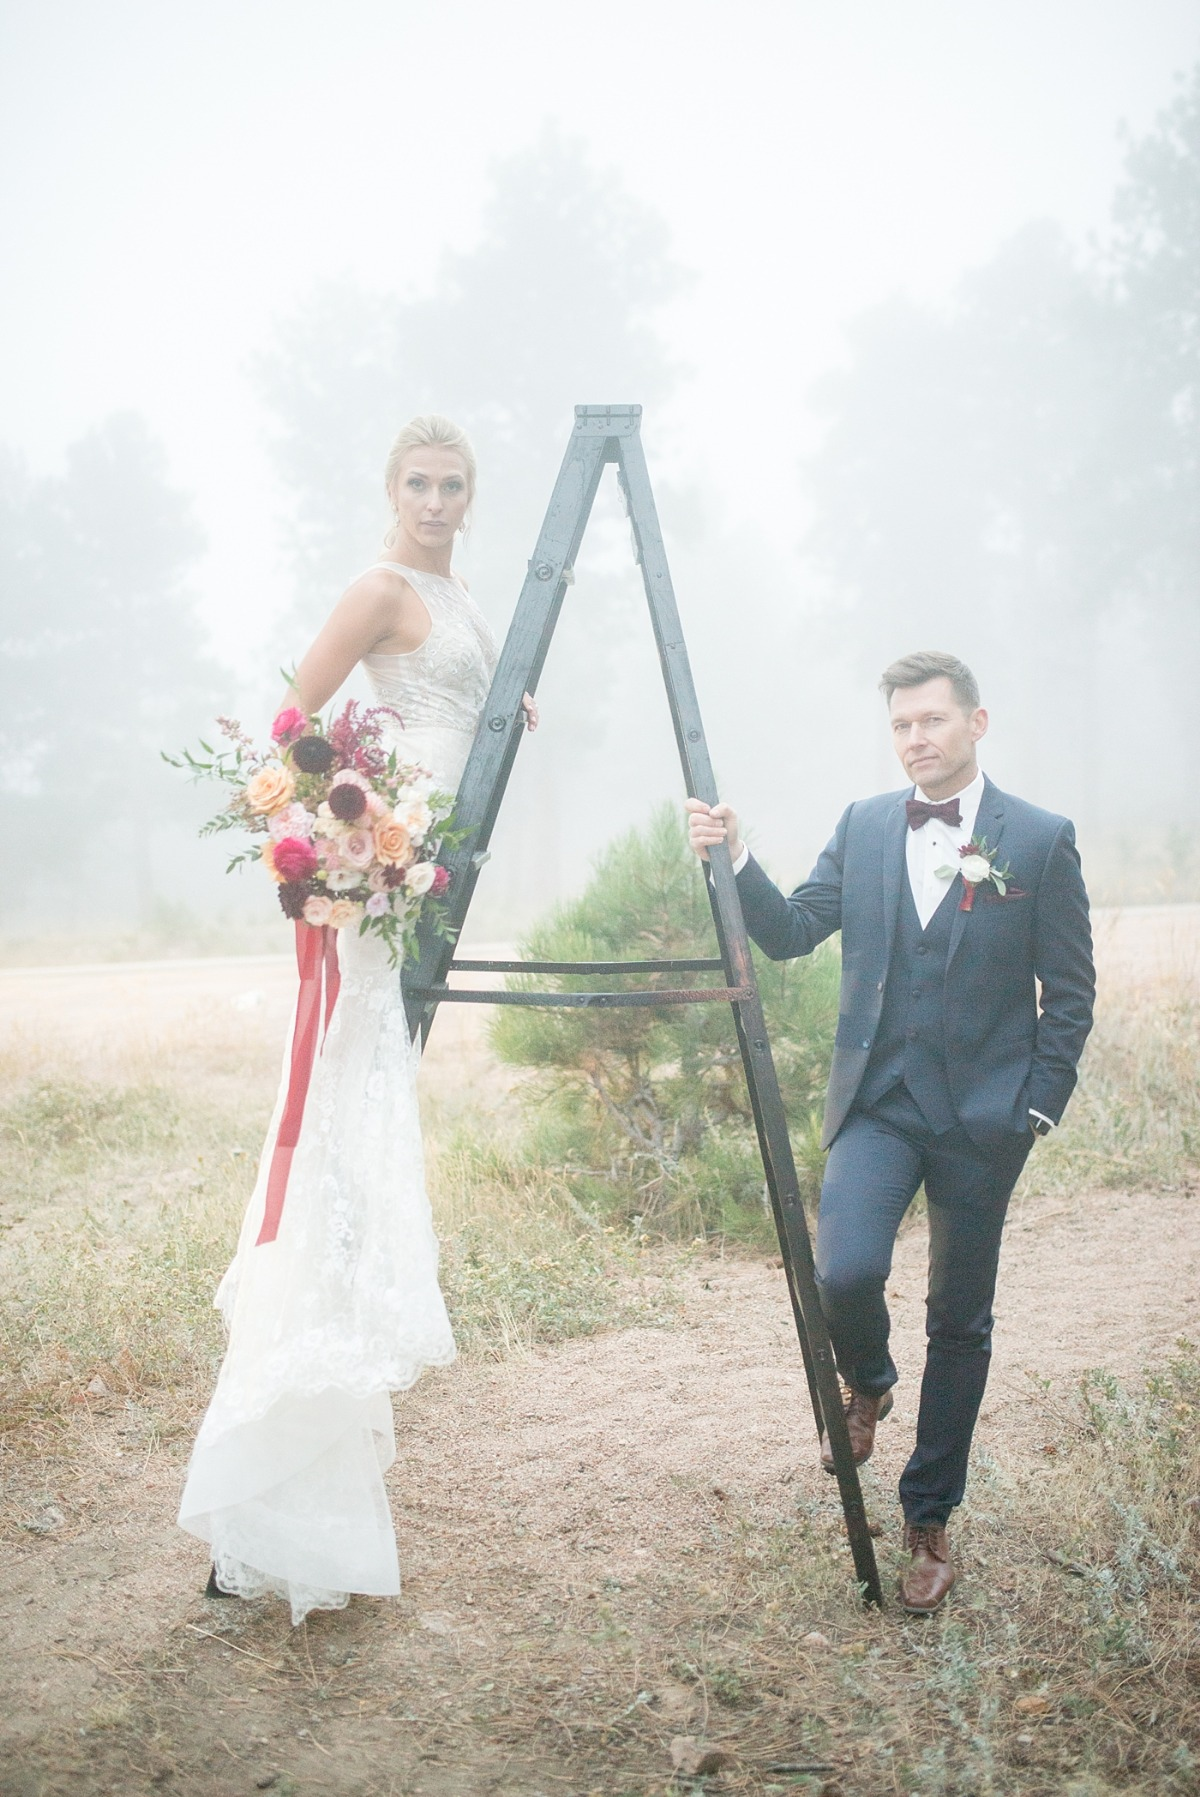 Misty Wedding Inspiration in the Mountains